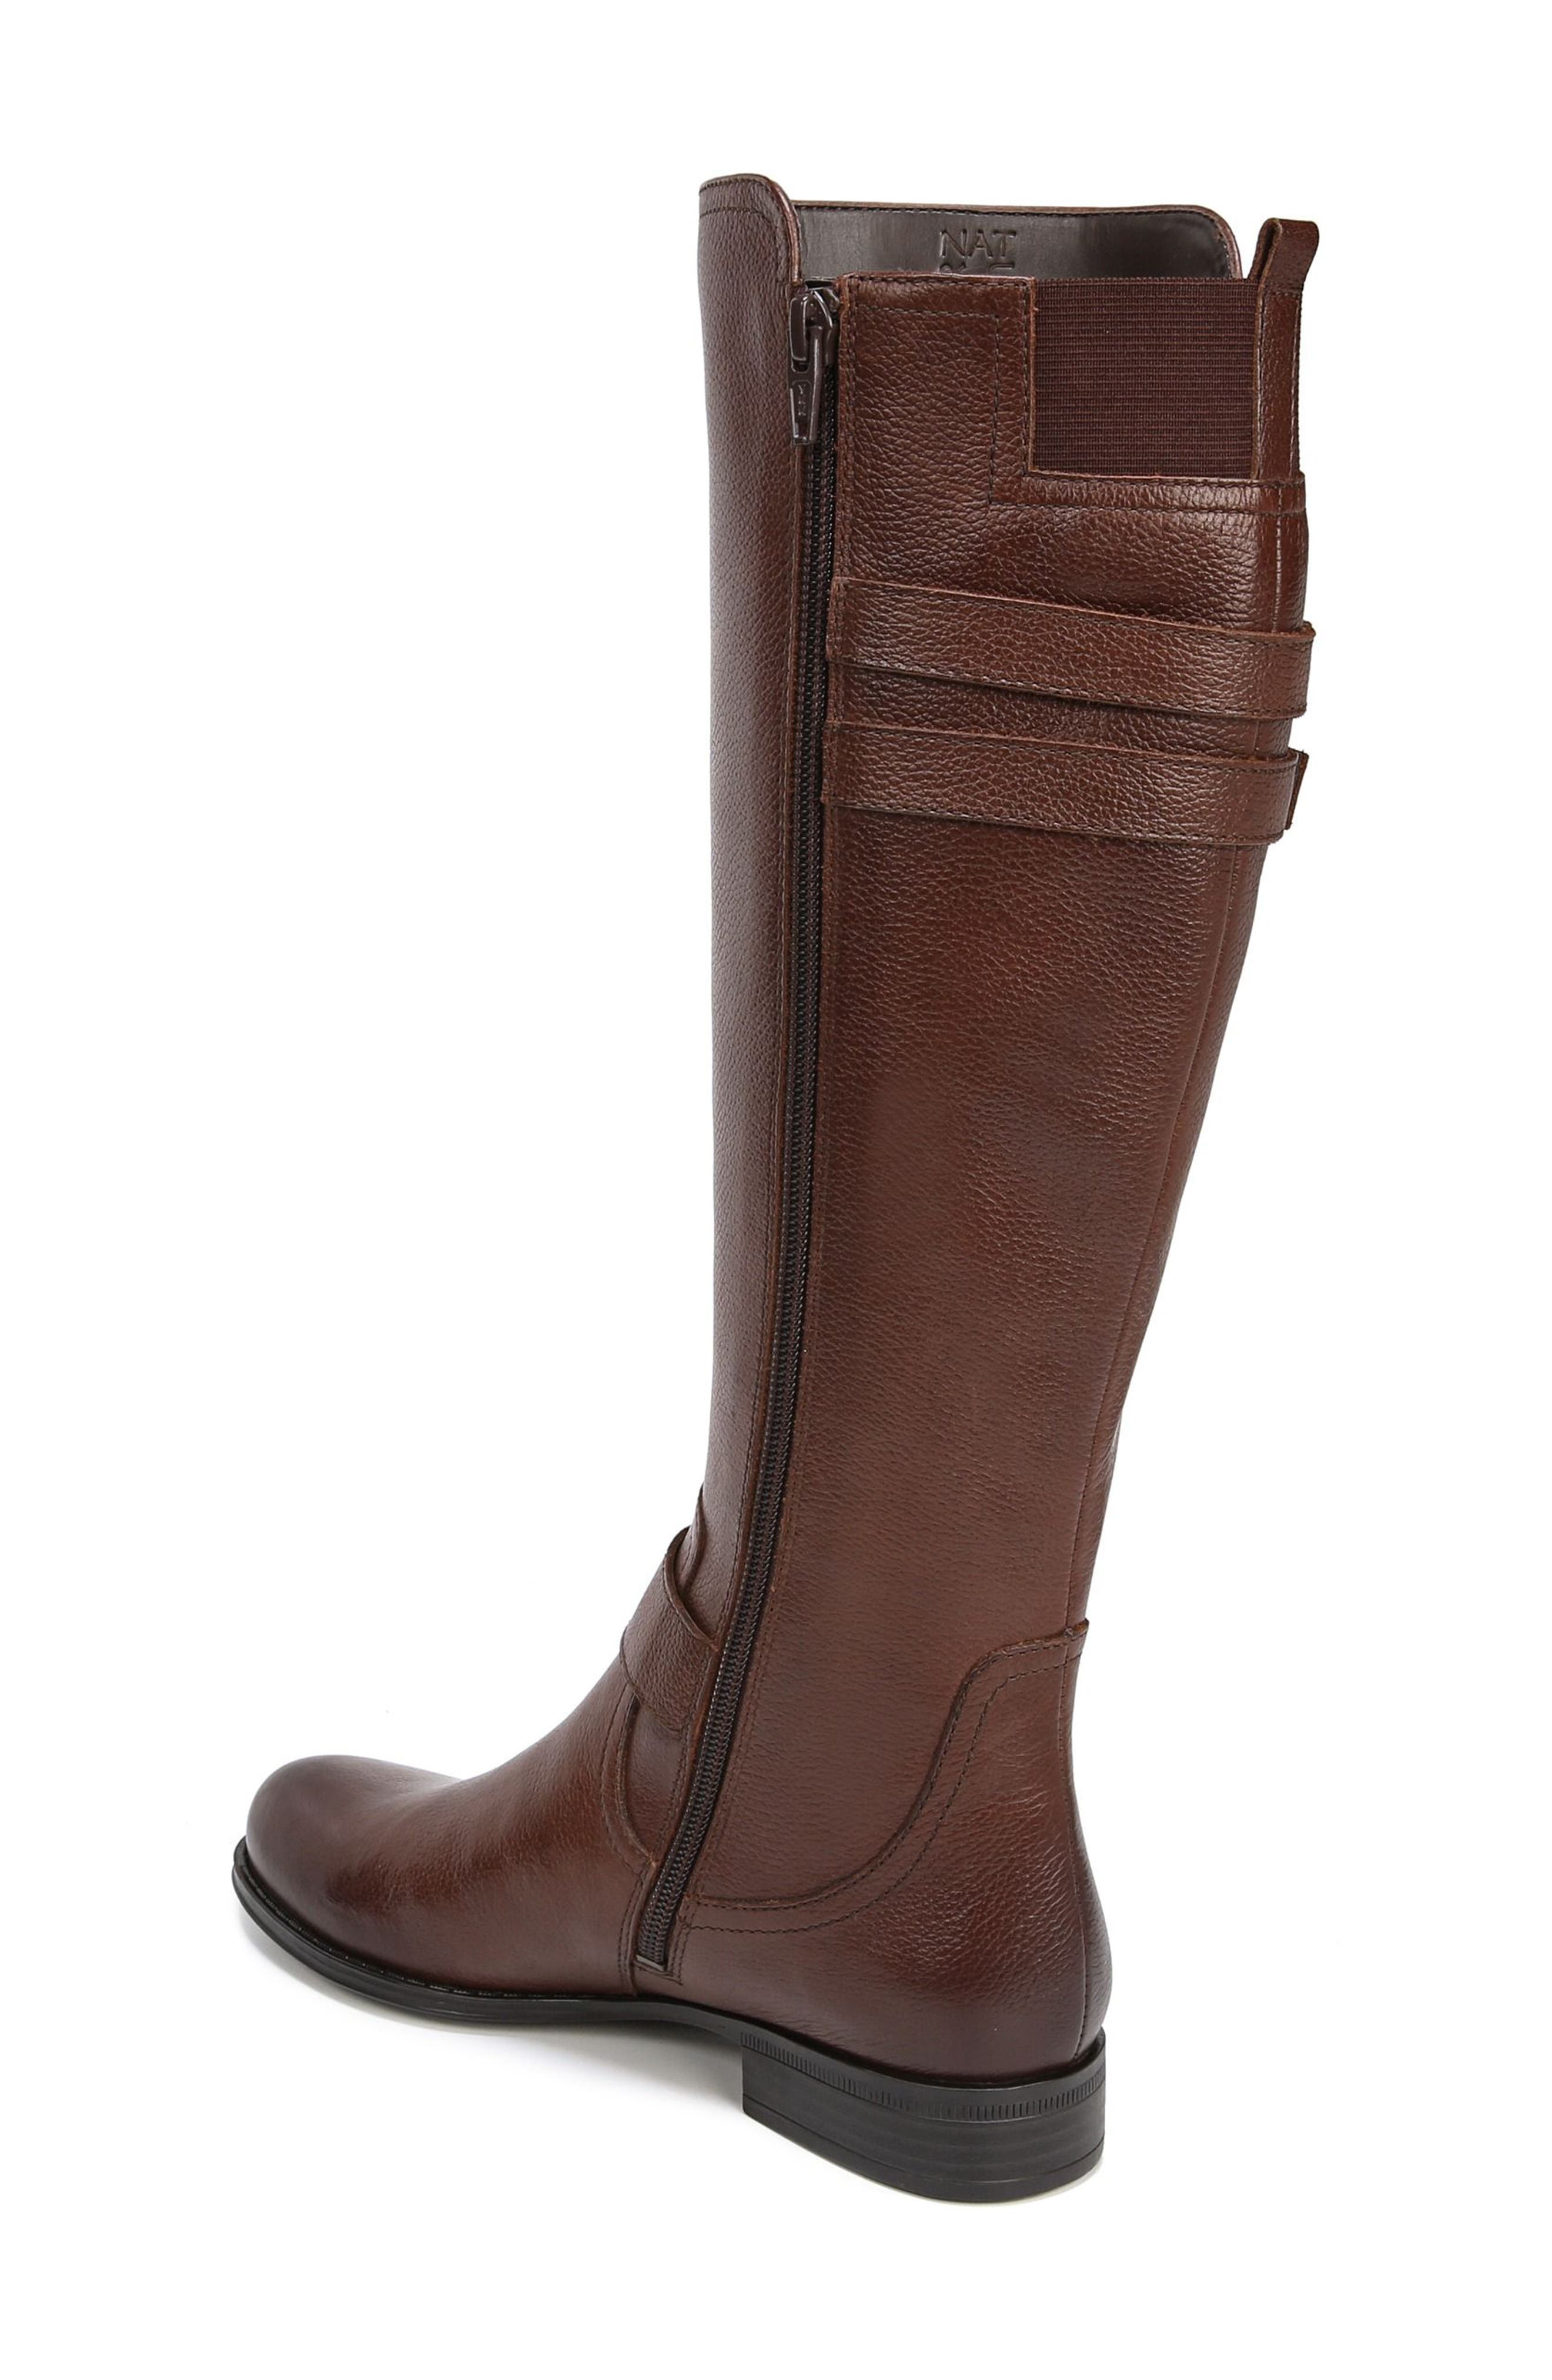 NATURALIZER, Jessie Knee High Riding Boot, Alternate thumbnail 2, color, CHOCOLATE LEATHER